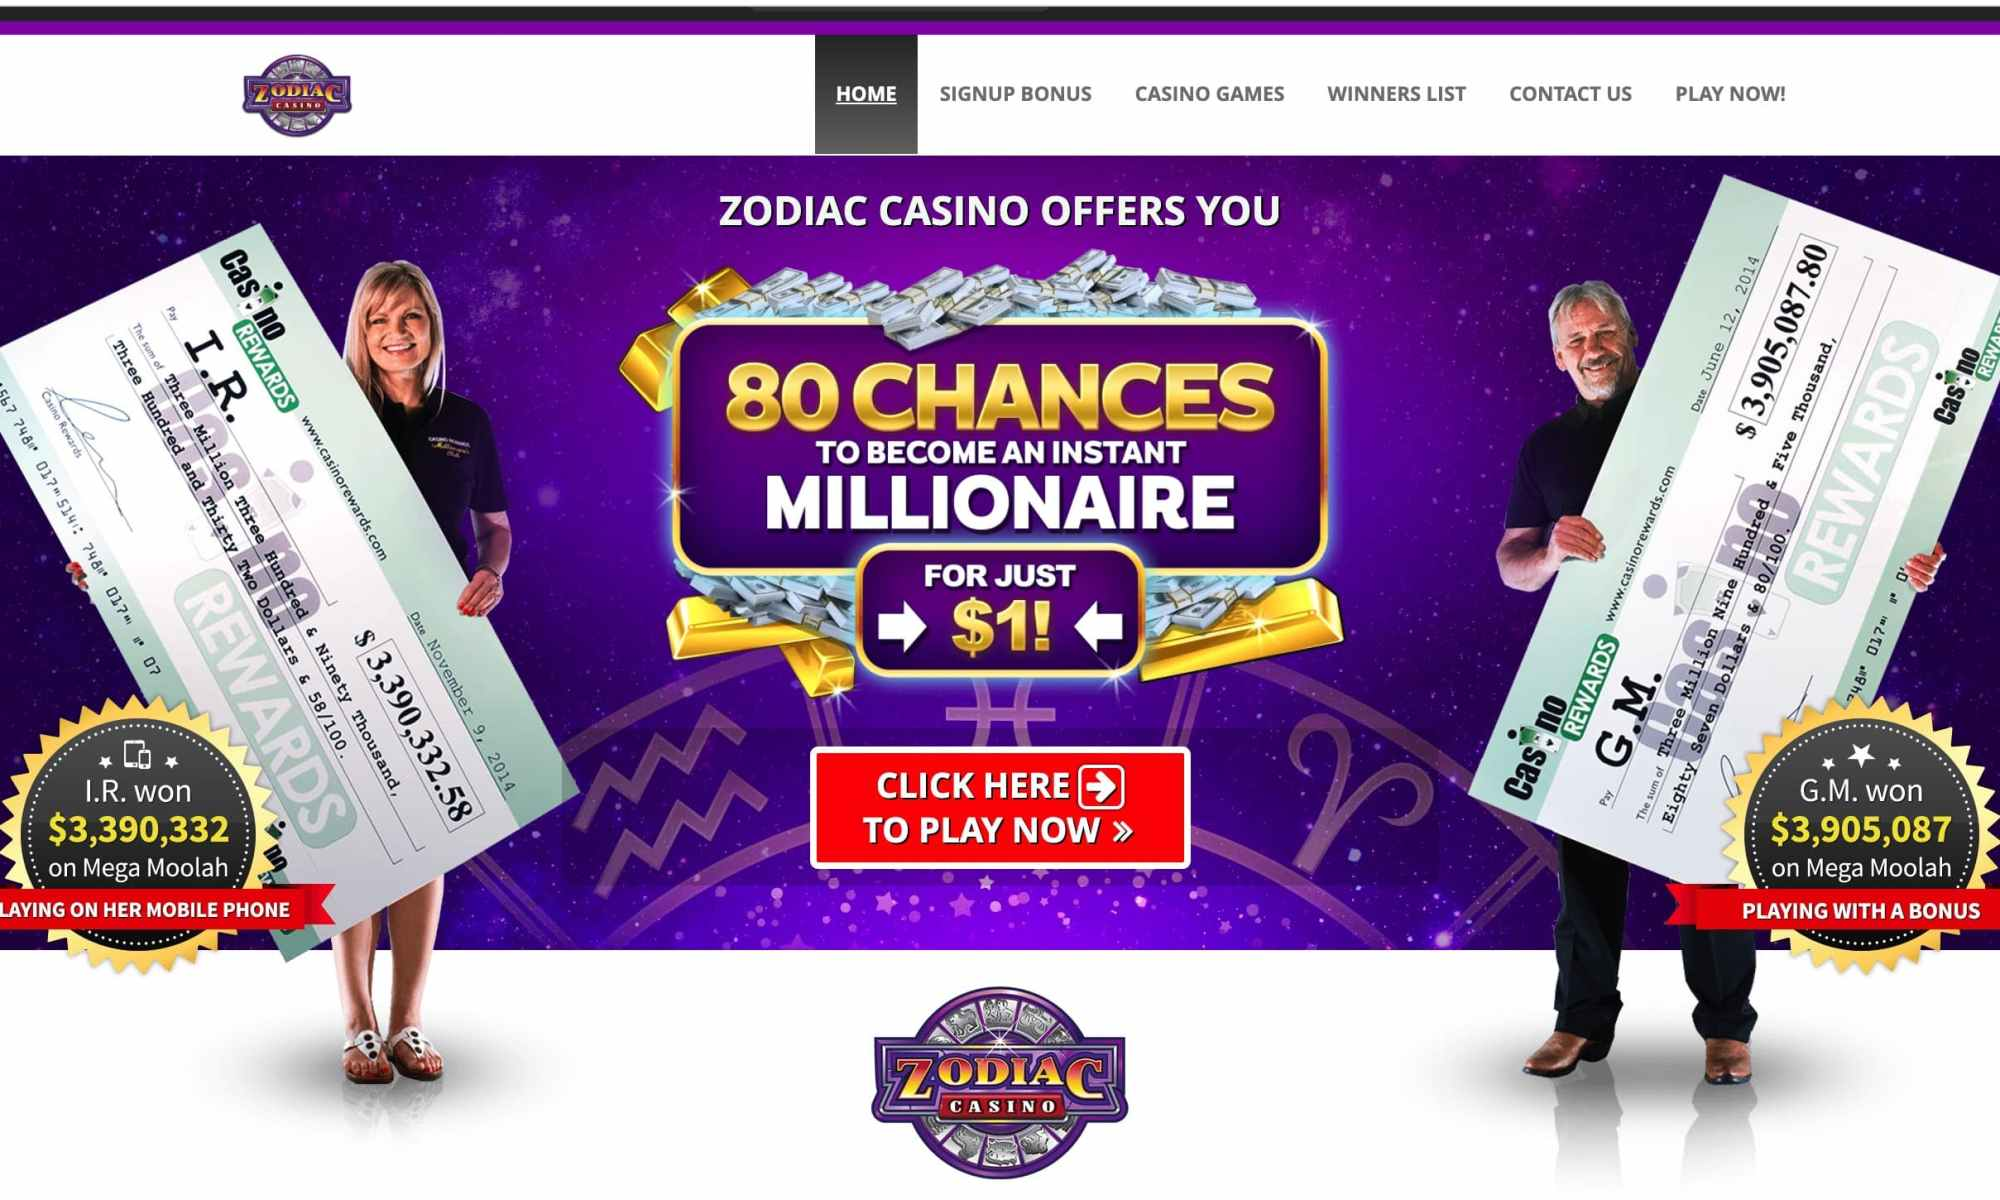 Zodiac Casino: New Progressive Slots For 80 Chances To Win